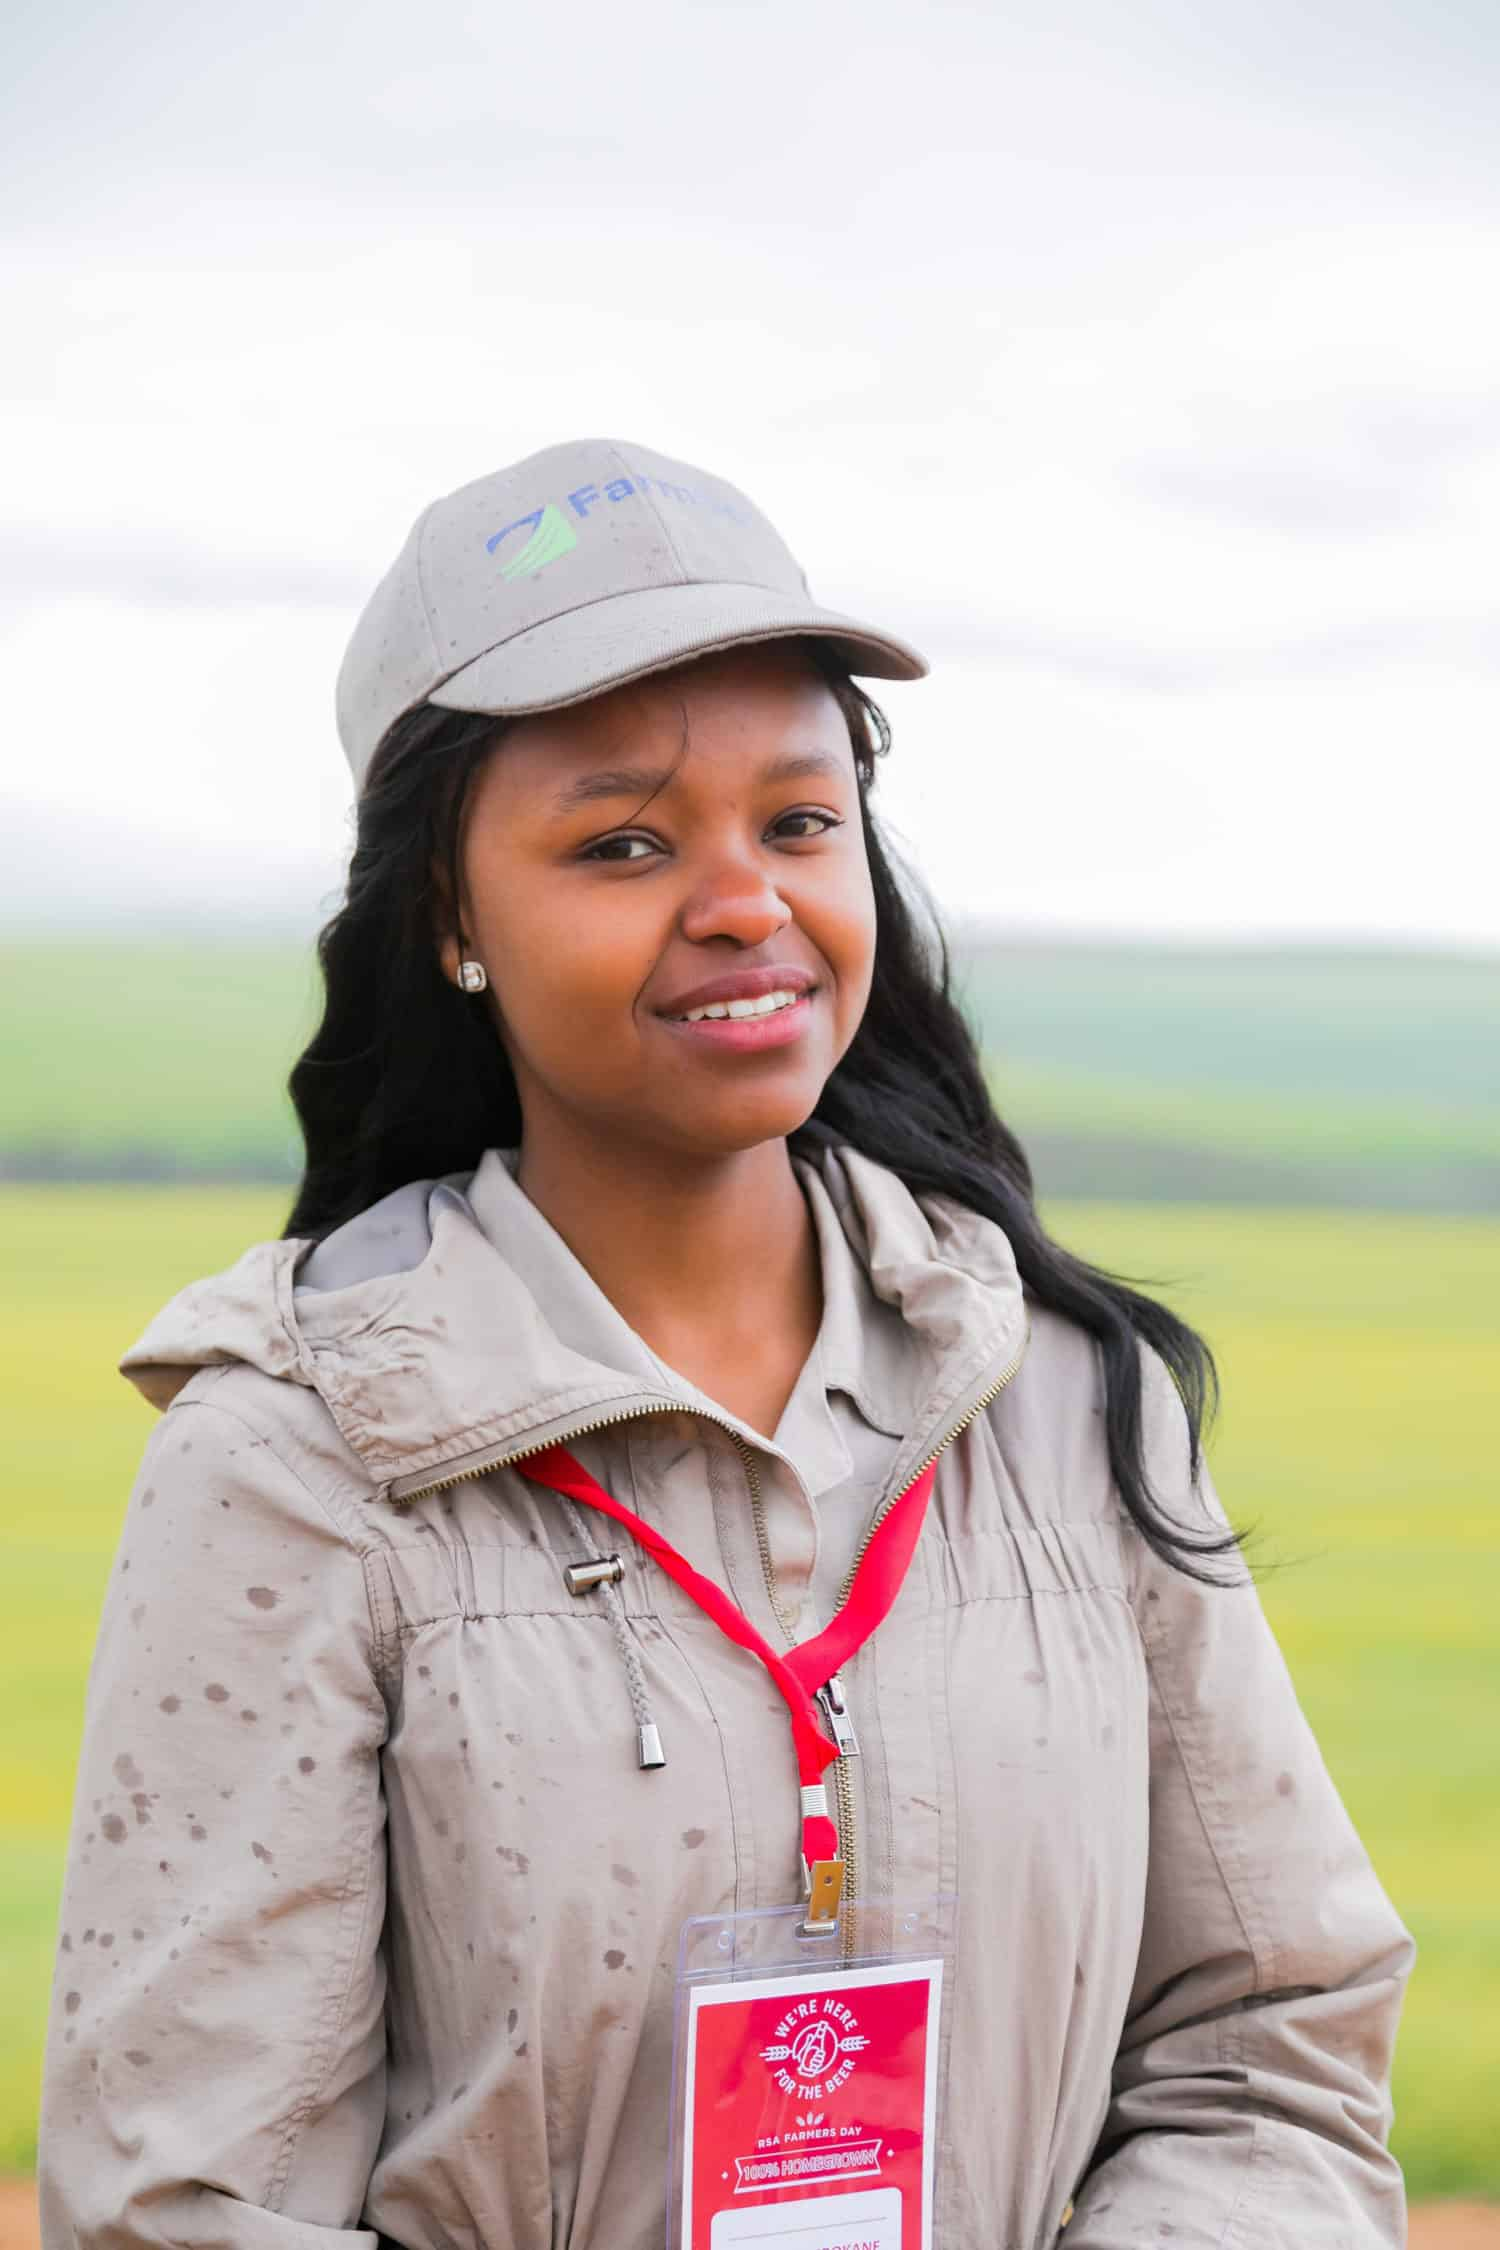 24-year-old Njabulo Mbokane farms with yellow maize and non-GMO crops in Mpumalanga and has also expanded into livestock.